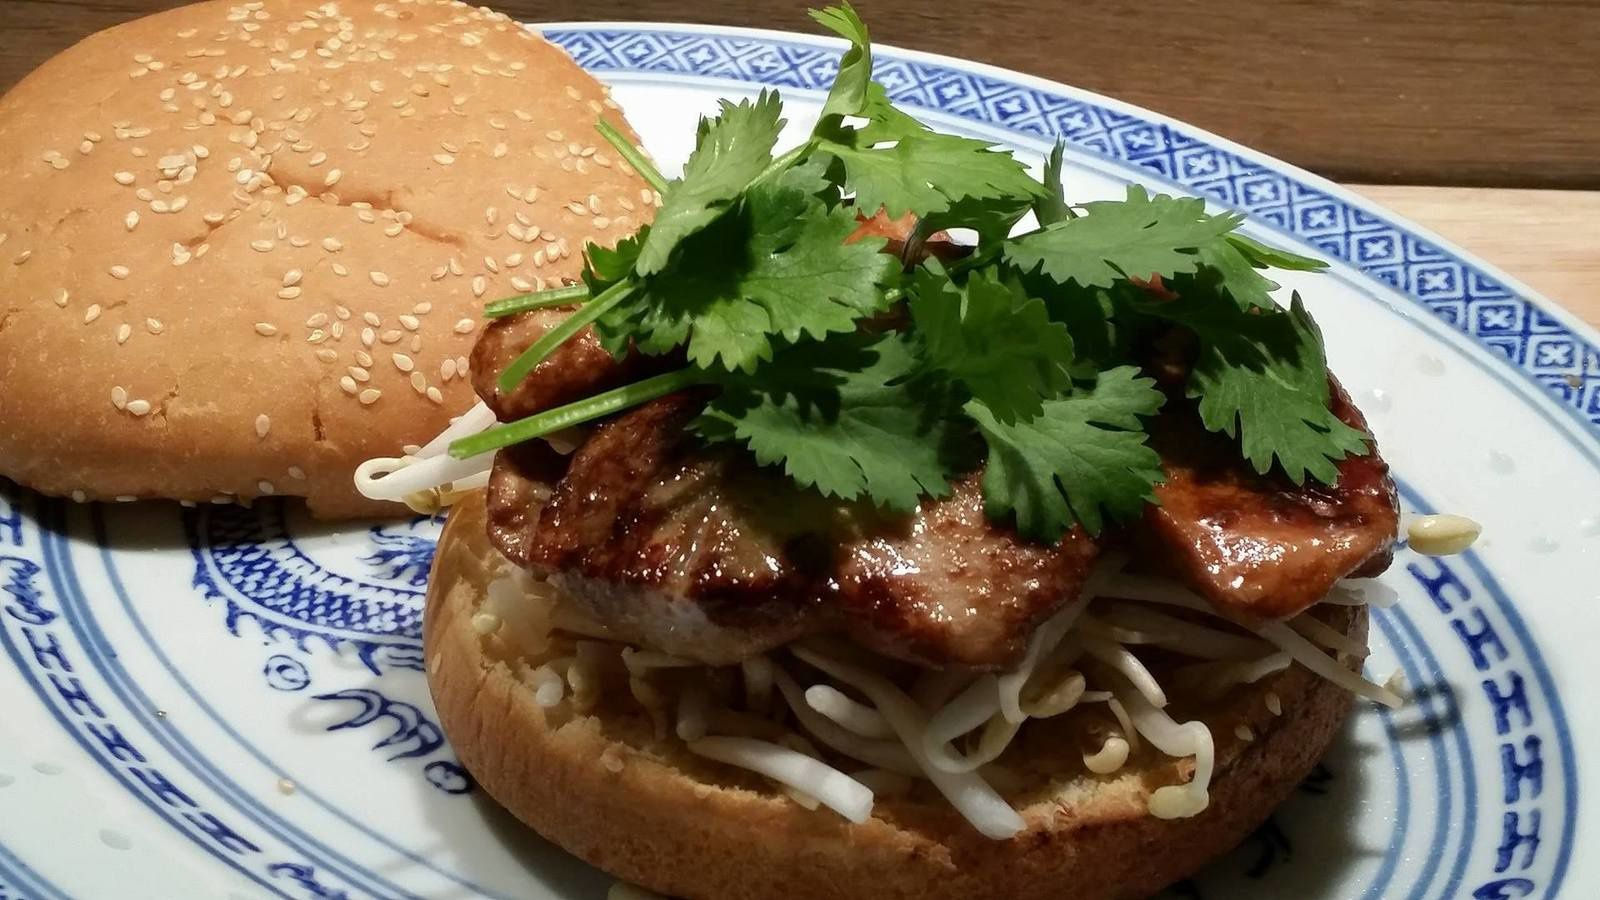 BURGER A L'ASIATIQUE AU POULET